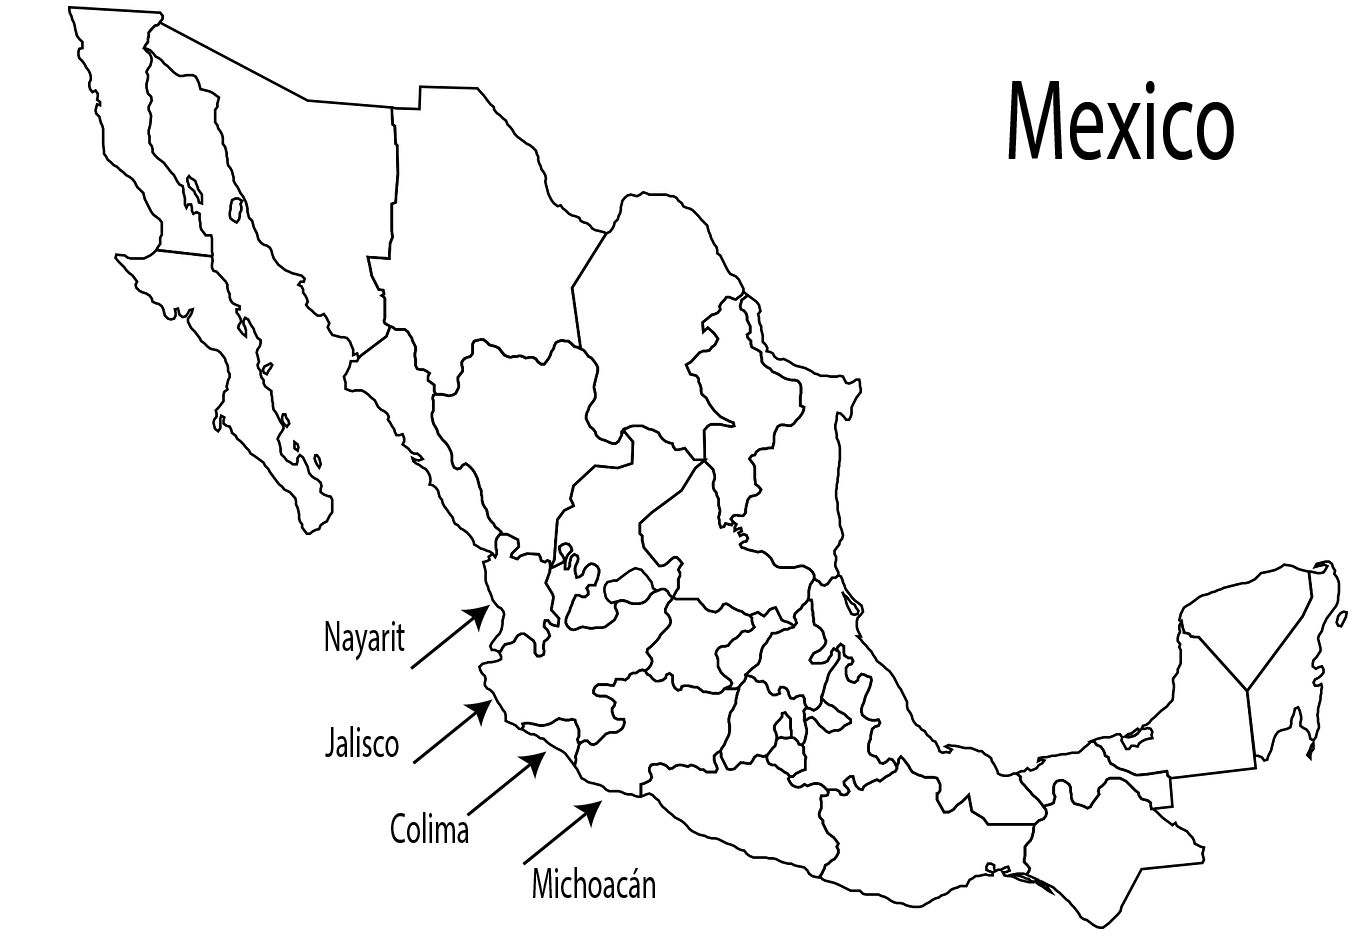 Mariachi music is native to the region of western states